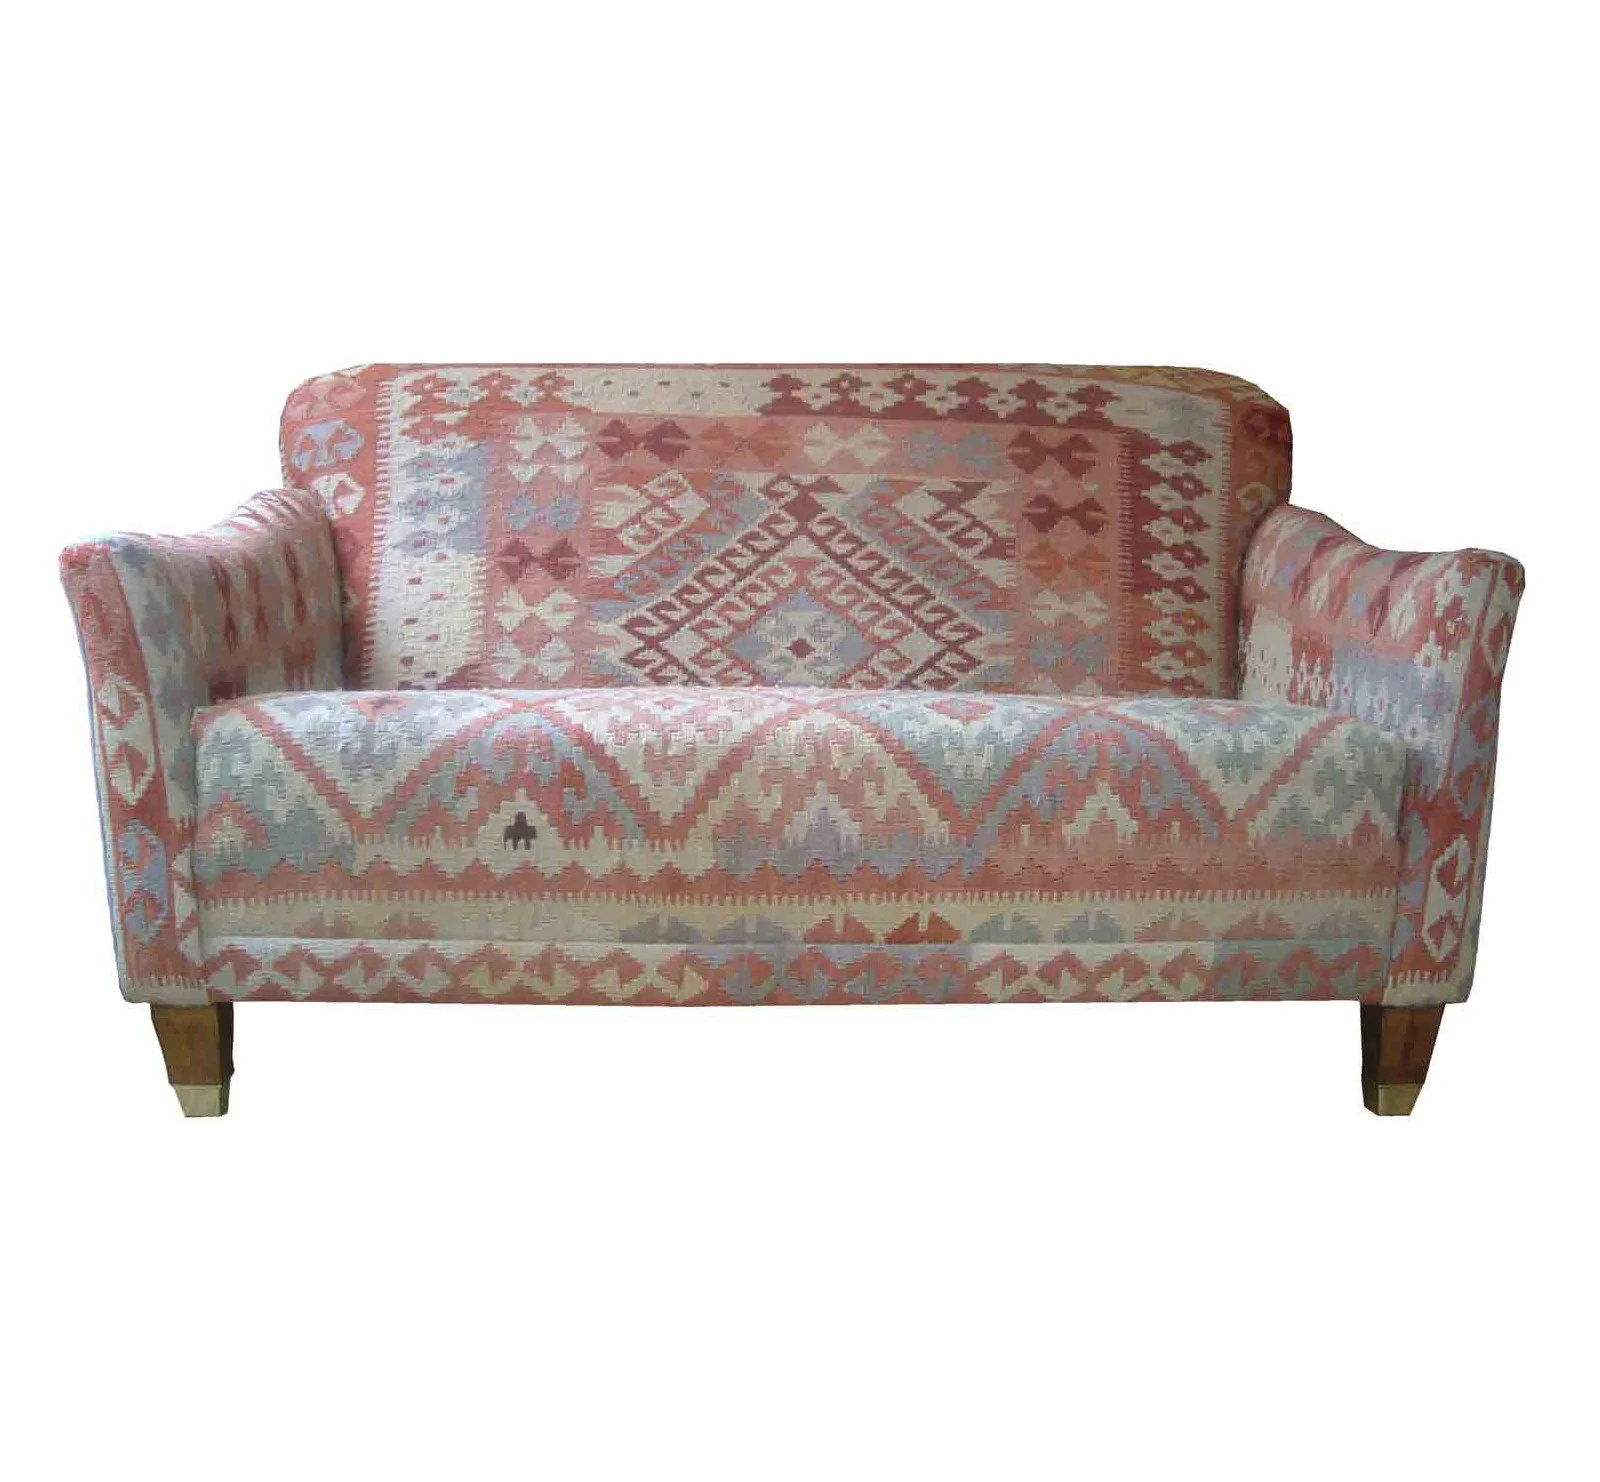 sofa deals uk prestwich sectional brown microfiber special offers on kilim covered furniture settle home